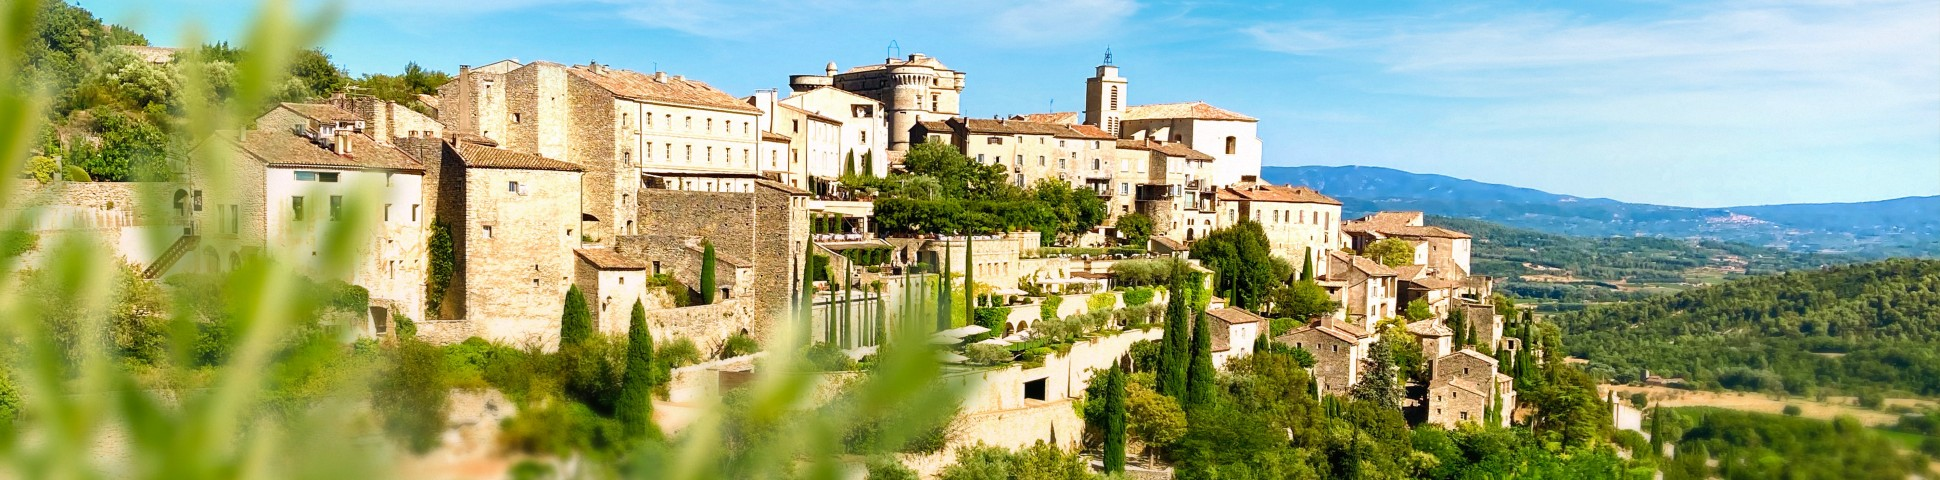 Provence region in France